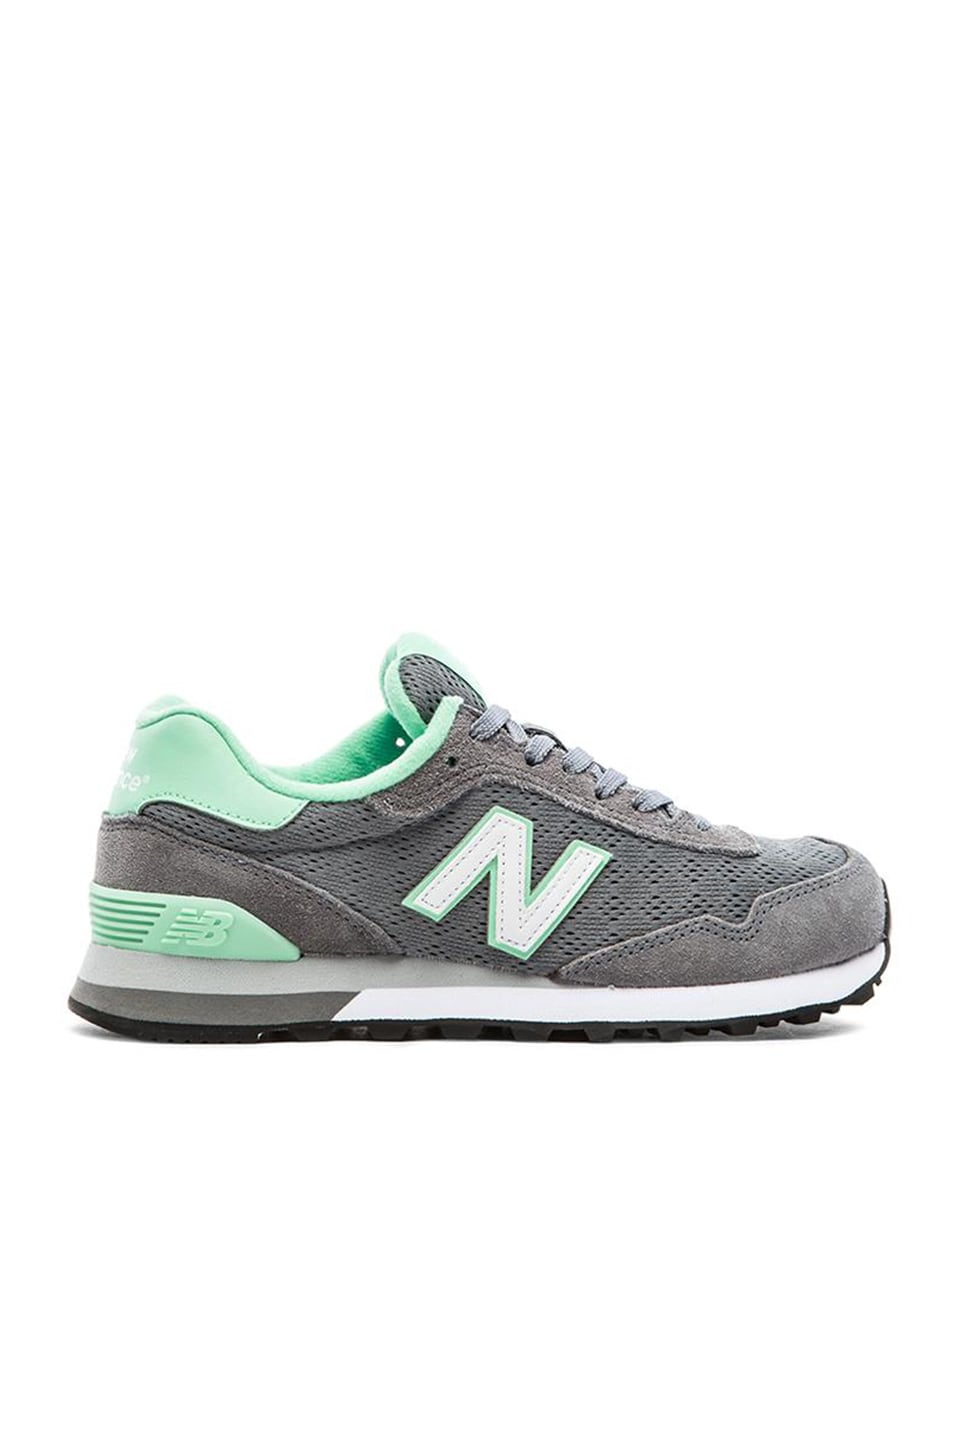 New Balance Modern Classics Collection in Grey & Green